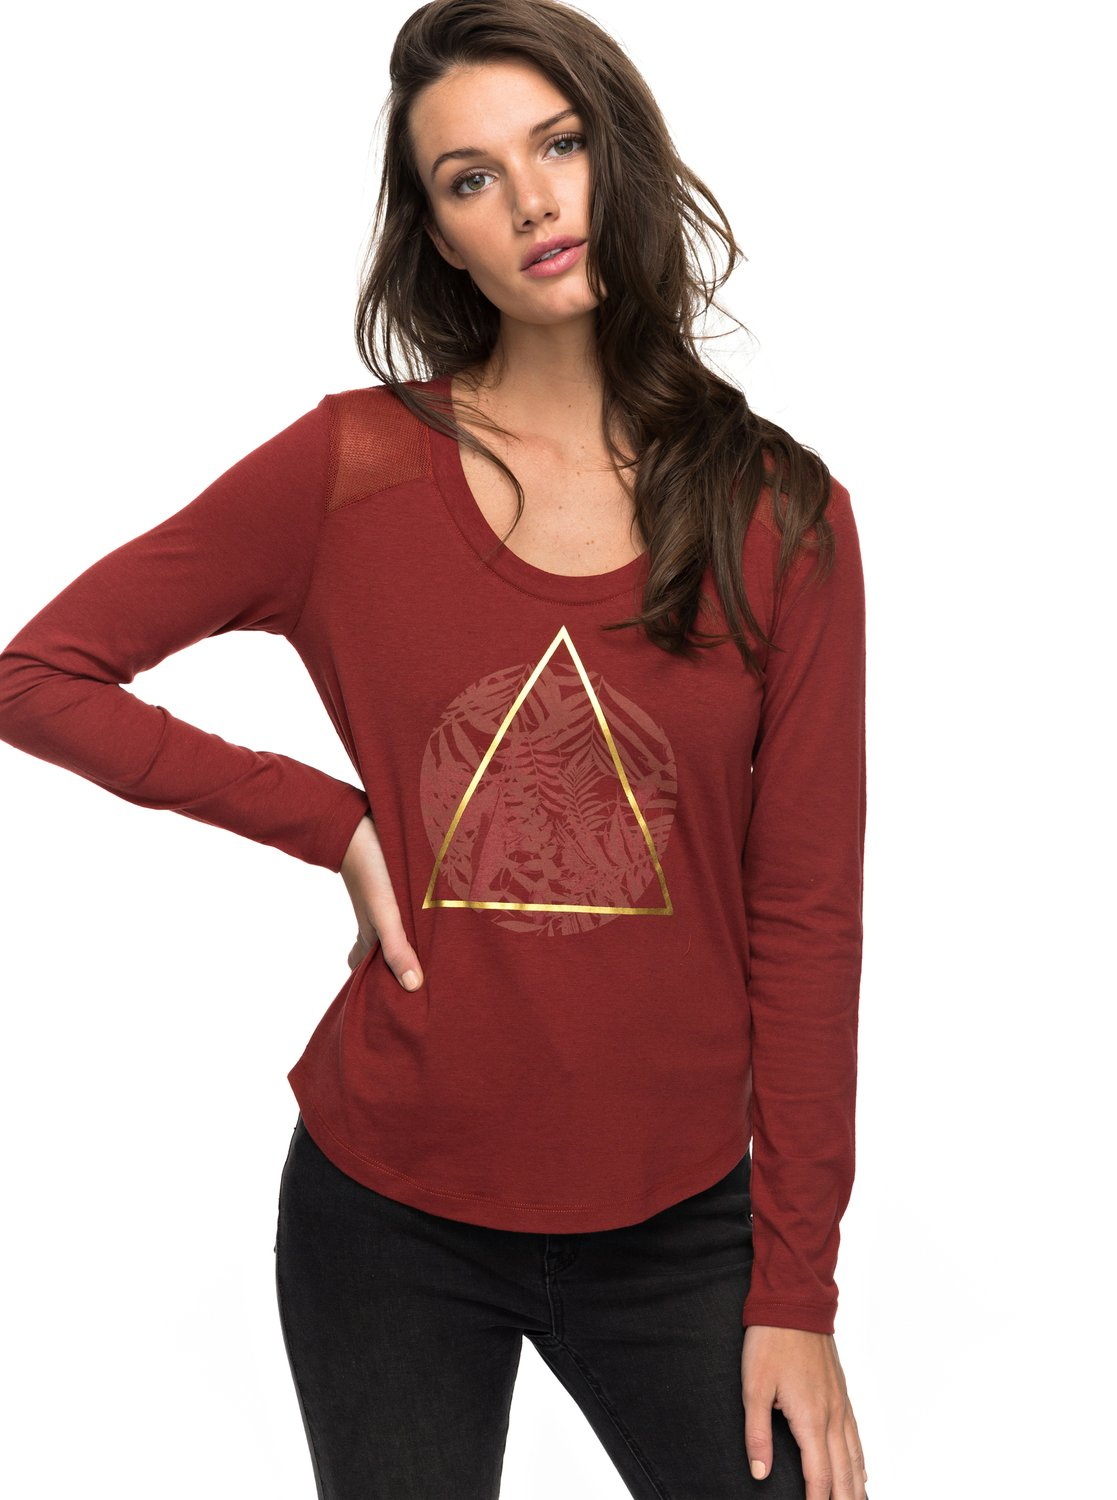 Air Potato Jungly Triangle - Camiseta de Manga Larga para Mujer Roxy